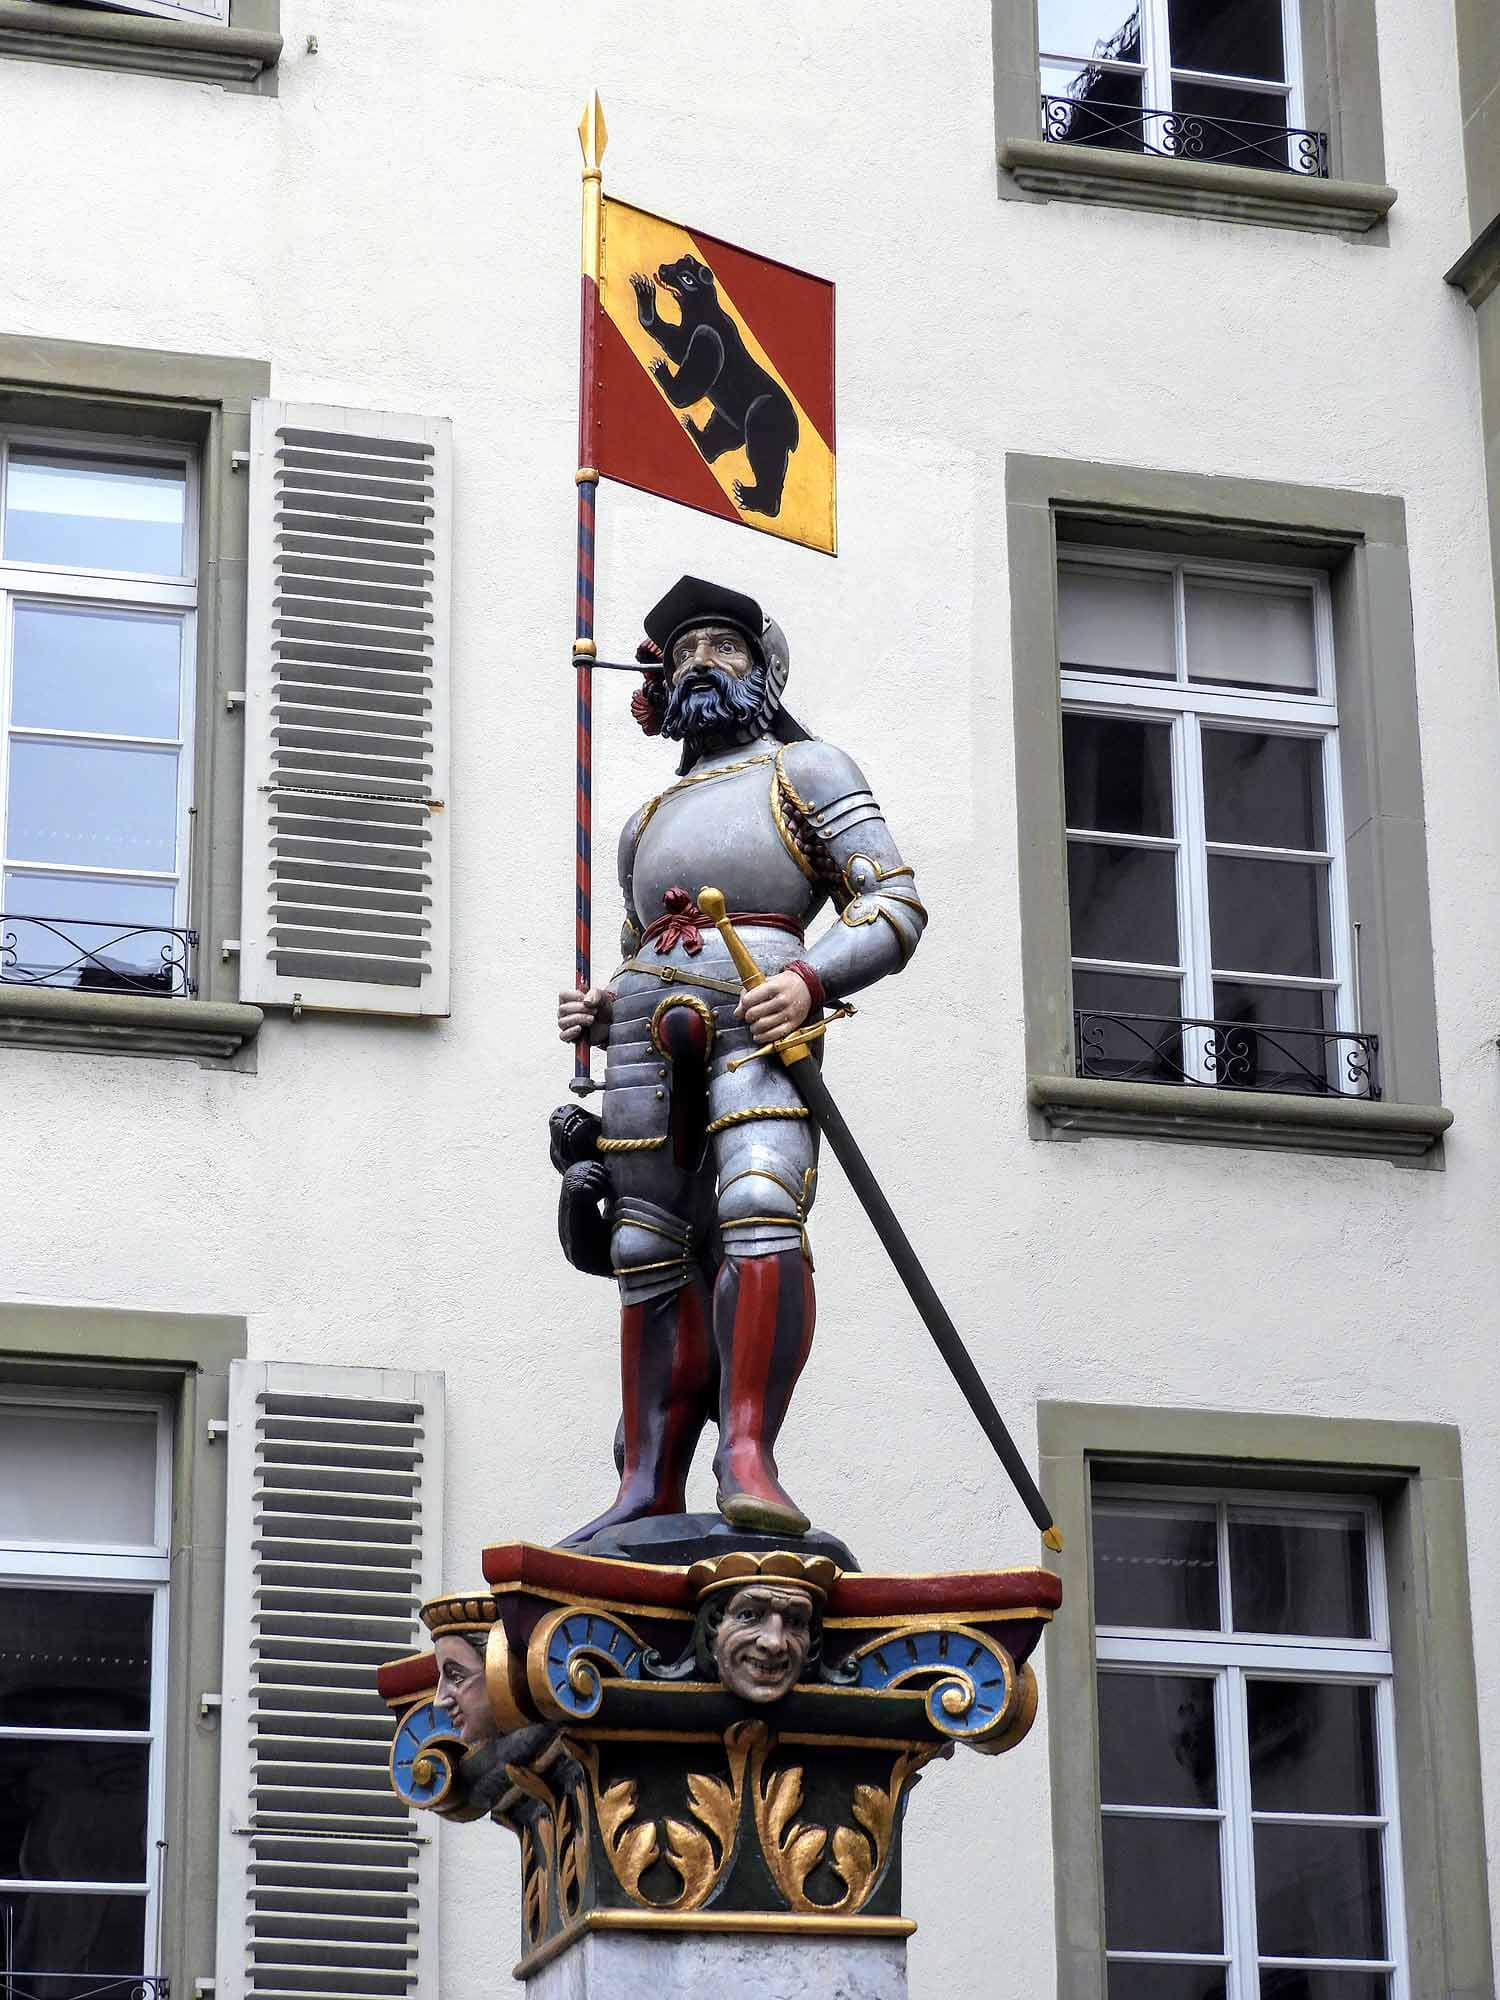 switzerland-bern-knight-statue.jpg